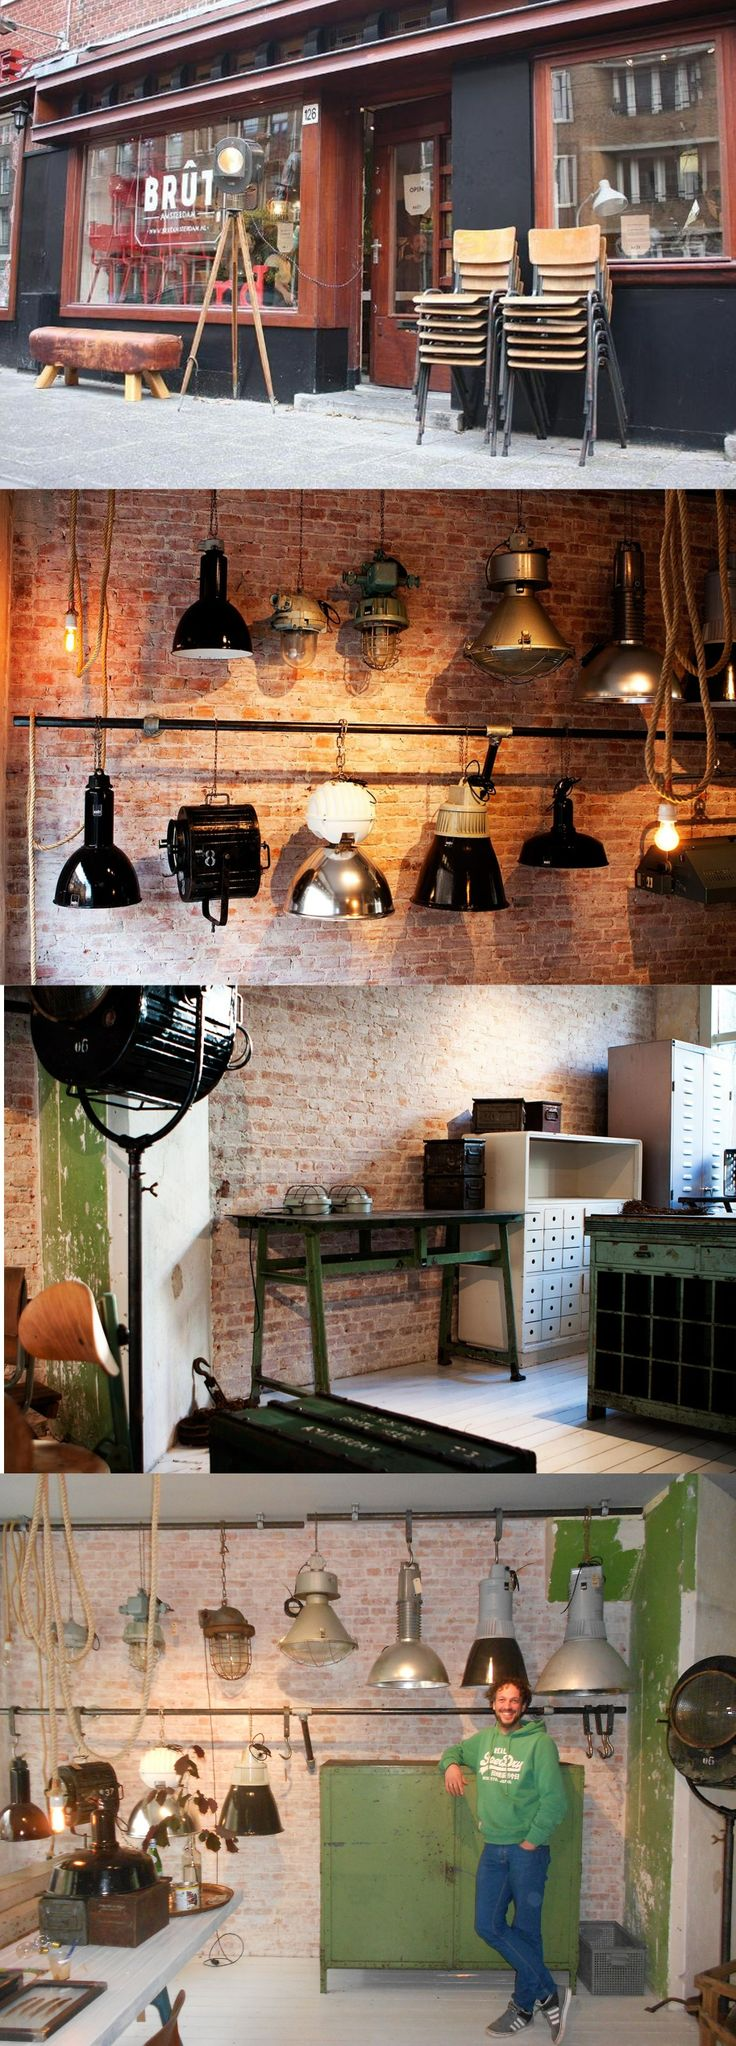 Brut, a furniture store in Amsterdam with industrial vintage products (witte de withstraat 126) http://www.brutamsterdam.nl/